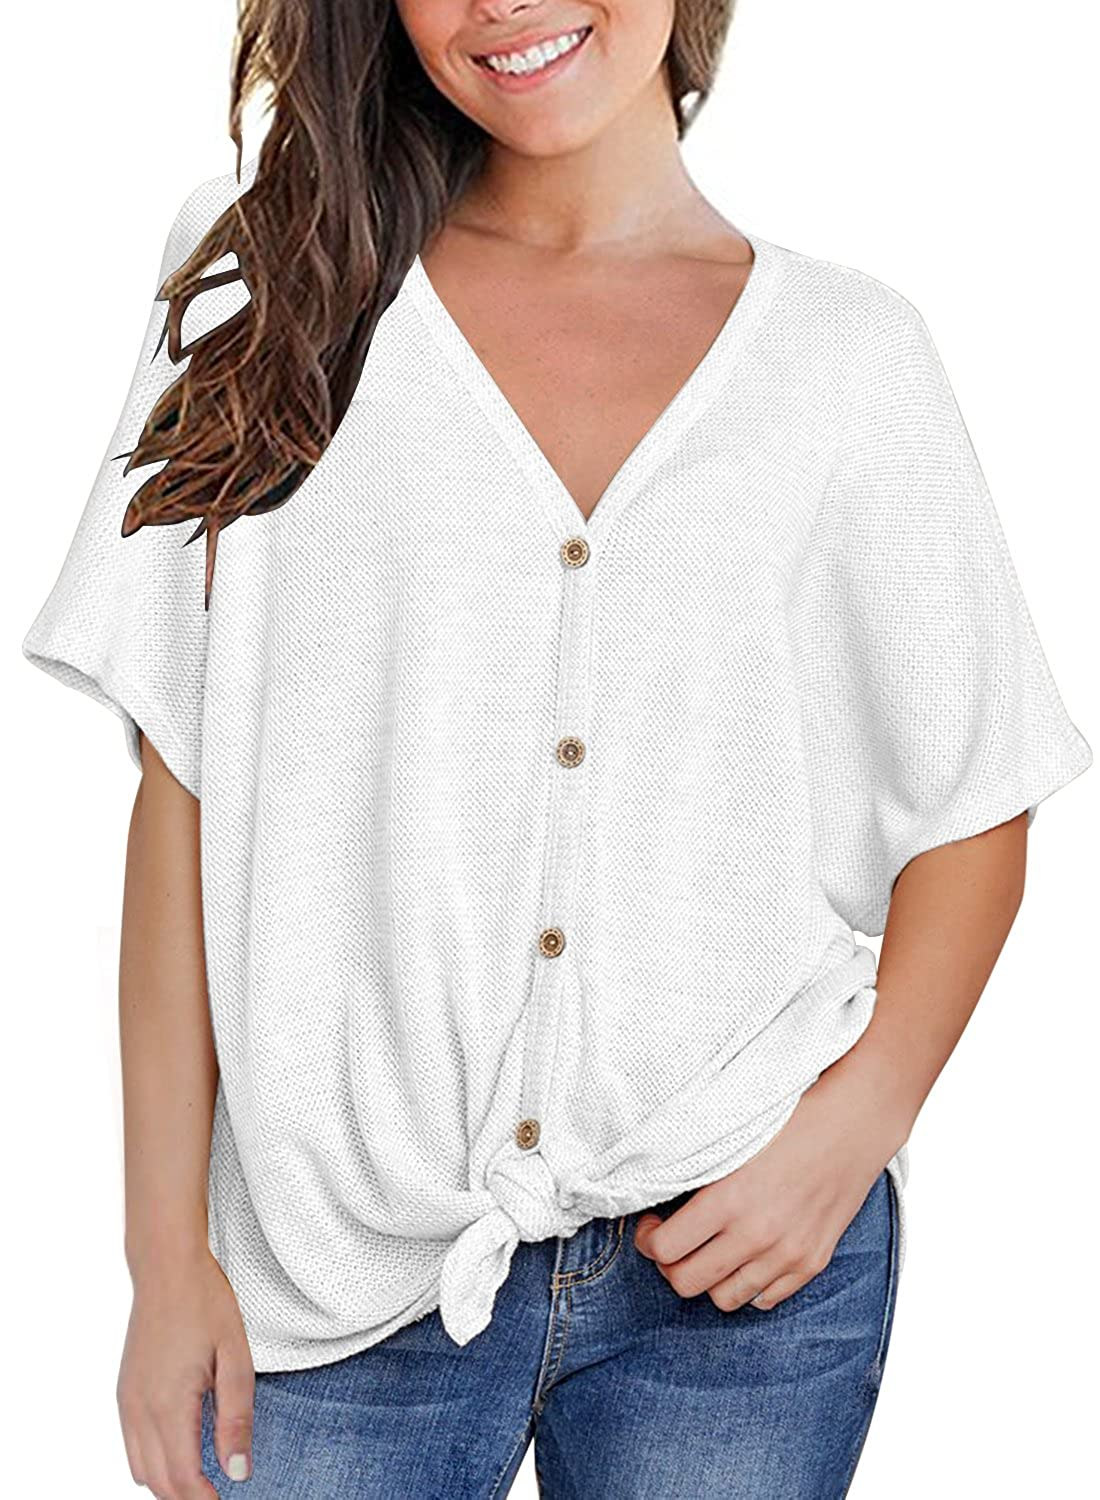 3f12e2c37 MIHOLL Womens Loose Blouse Short Sleeve V Neck Button Down T Shirts Tie  Front Knot Casual Tops at Amazon Women's Clothing store: